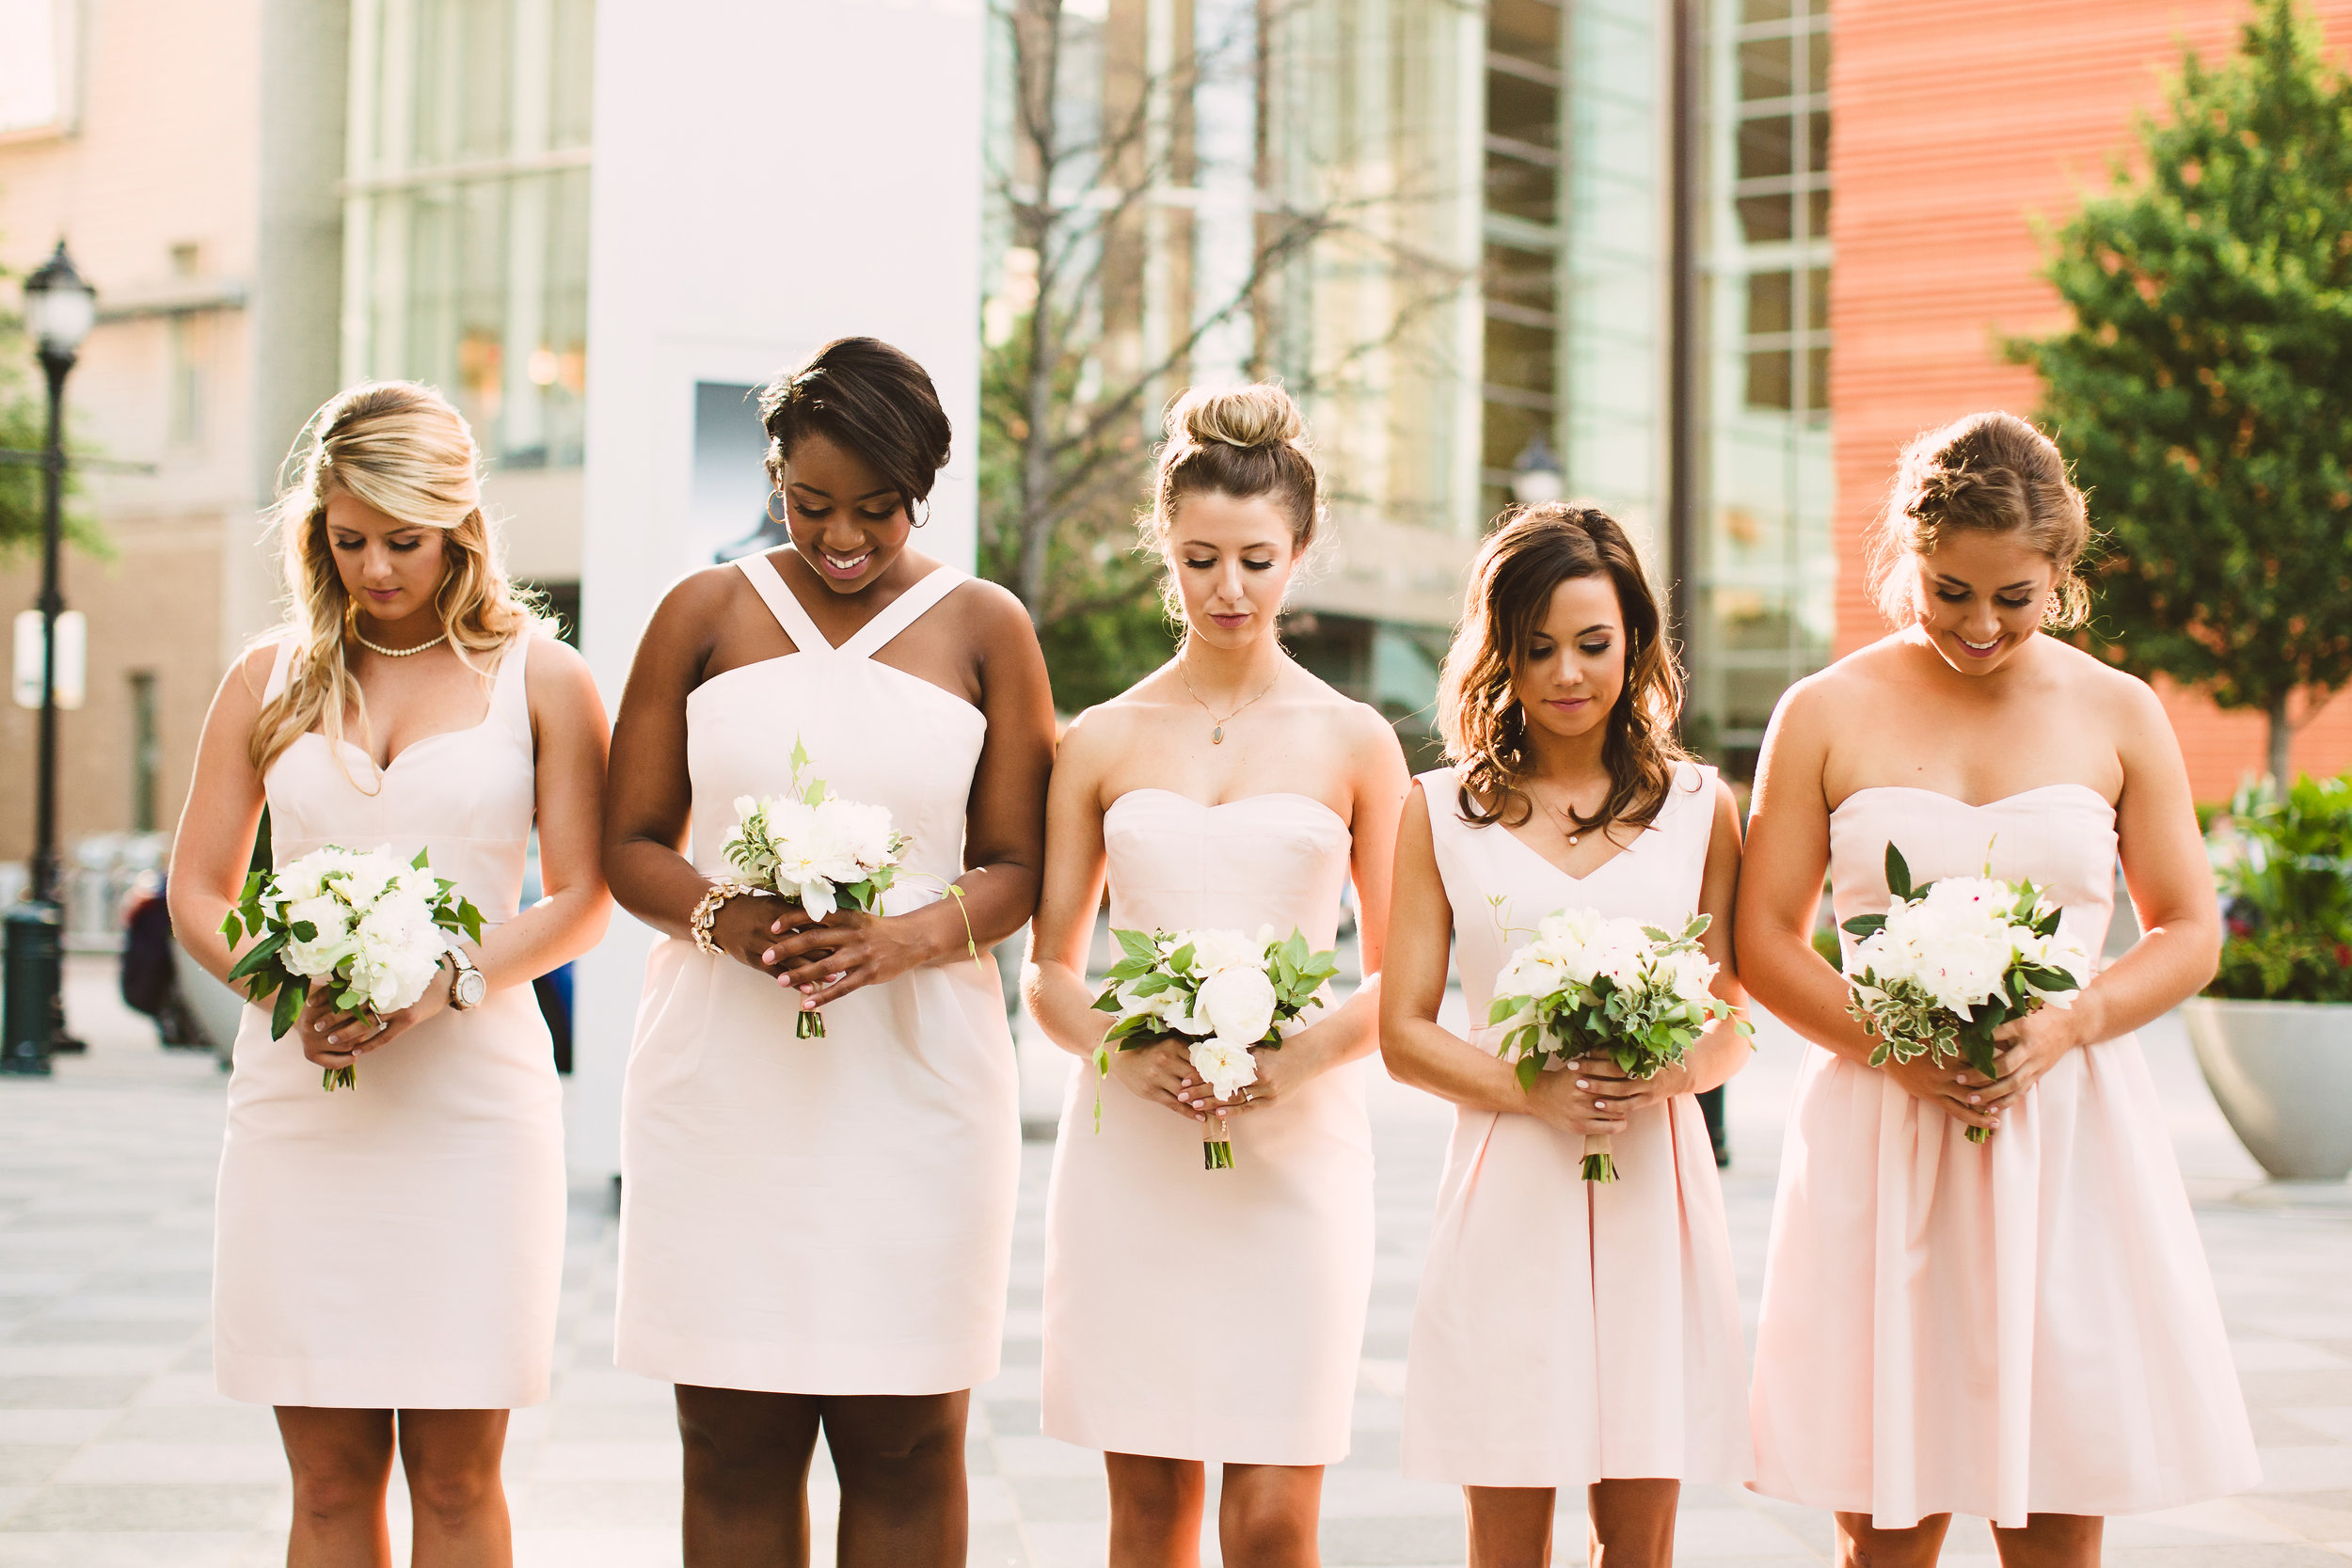 J Crew blush pink bridesmaid dresses, Bridal party style, Bridesmaid bouquet, Pink ivory and greenery bouquet, Mint Museum Uptown wedding in Charlotte, North Carolina by The Graceful Host